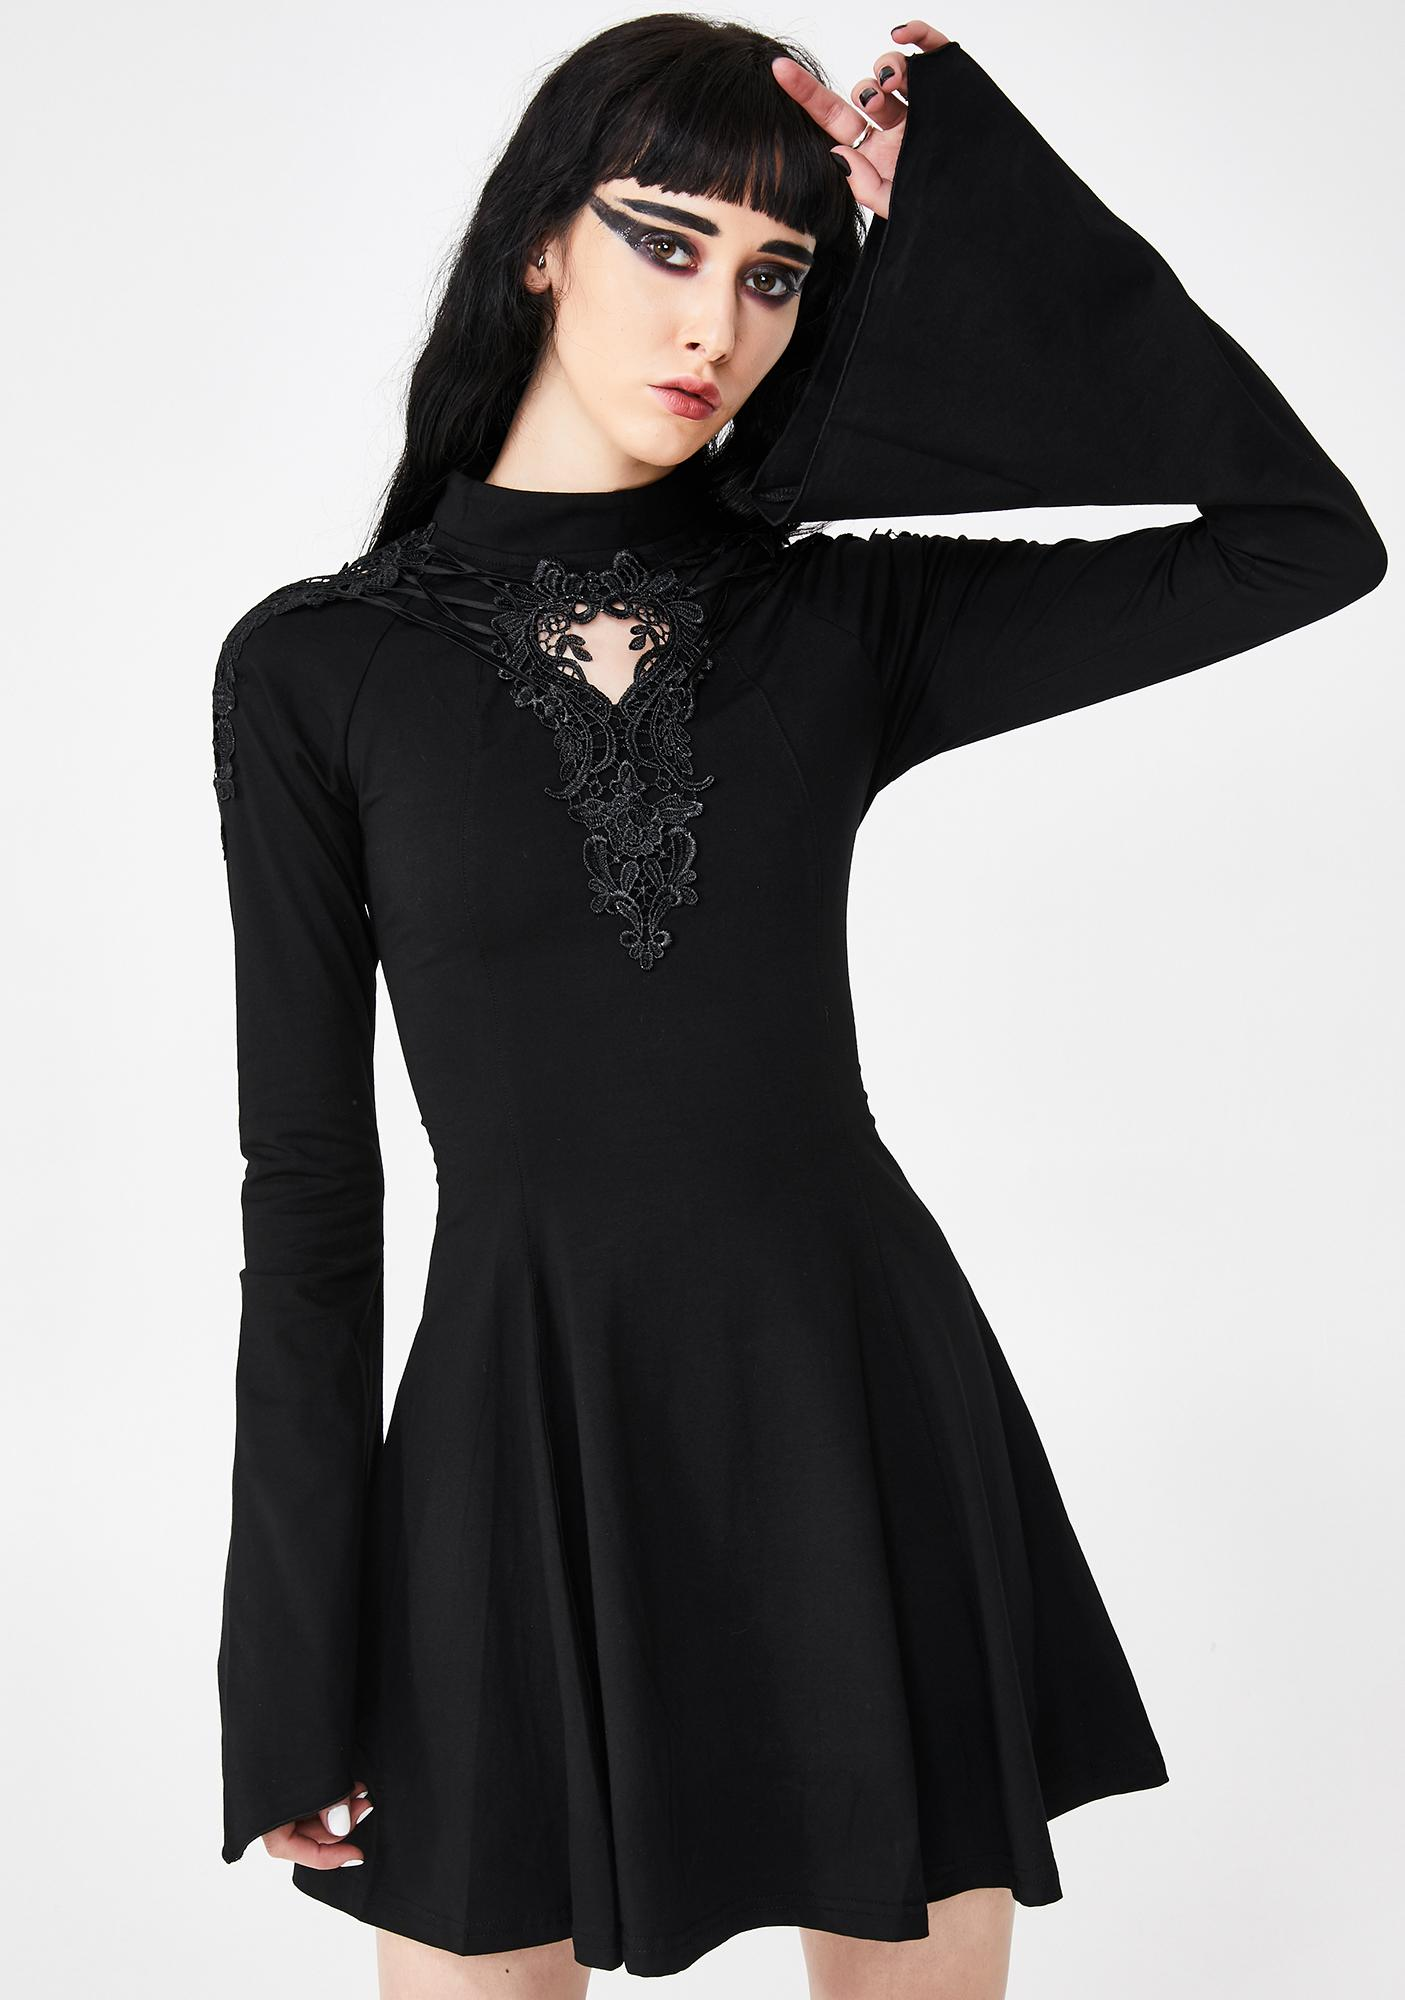 Punk Rave Gothic Hollow Pendulum Dress